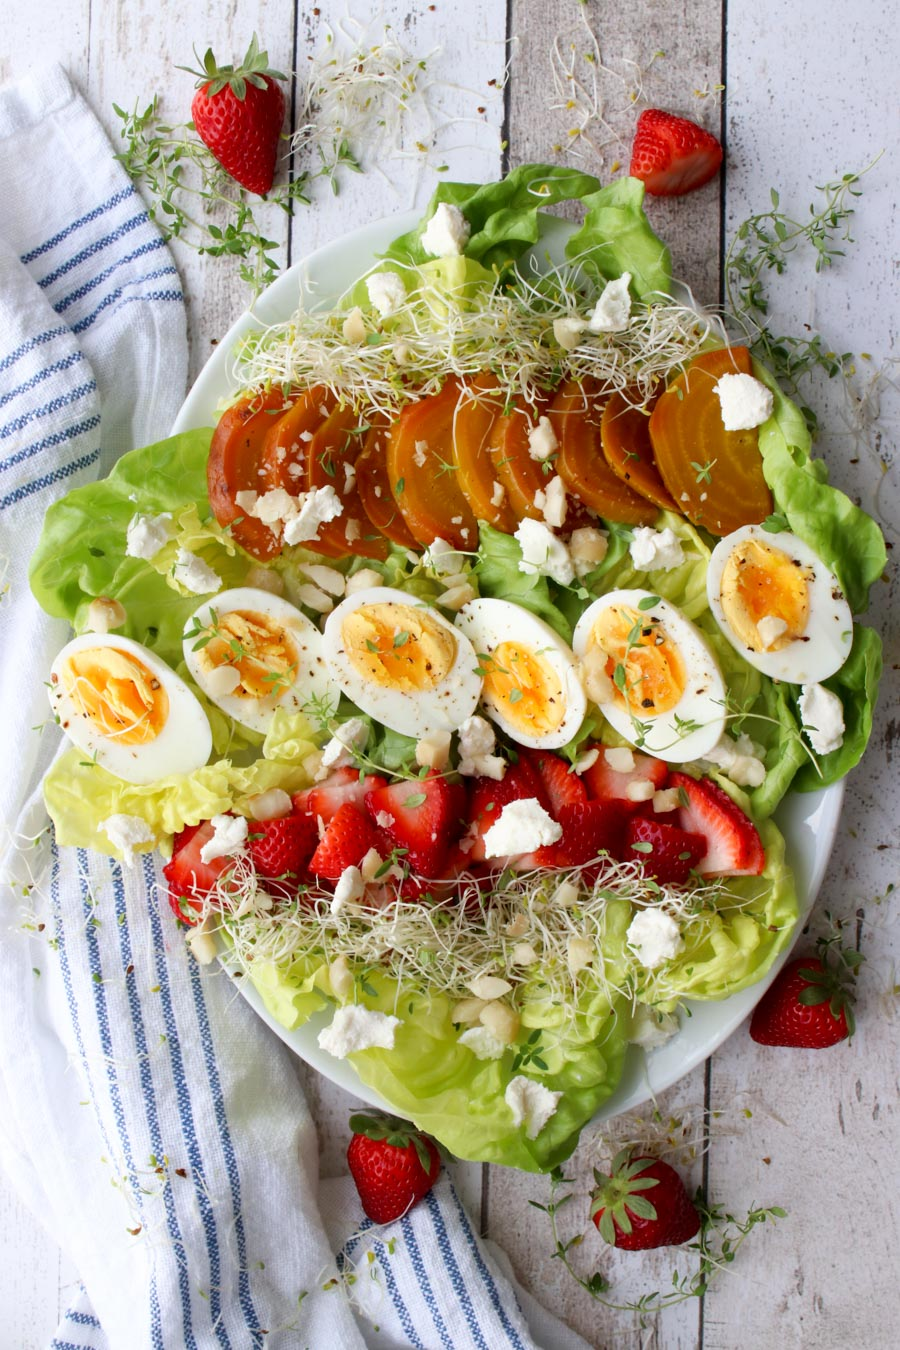 platter with a colorful spring salad